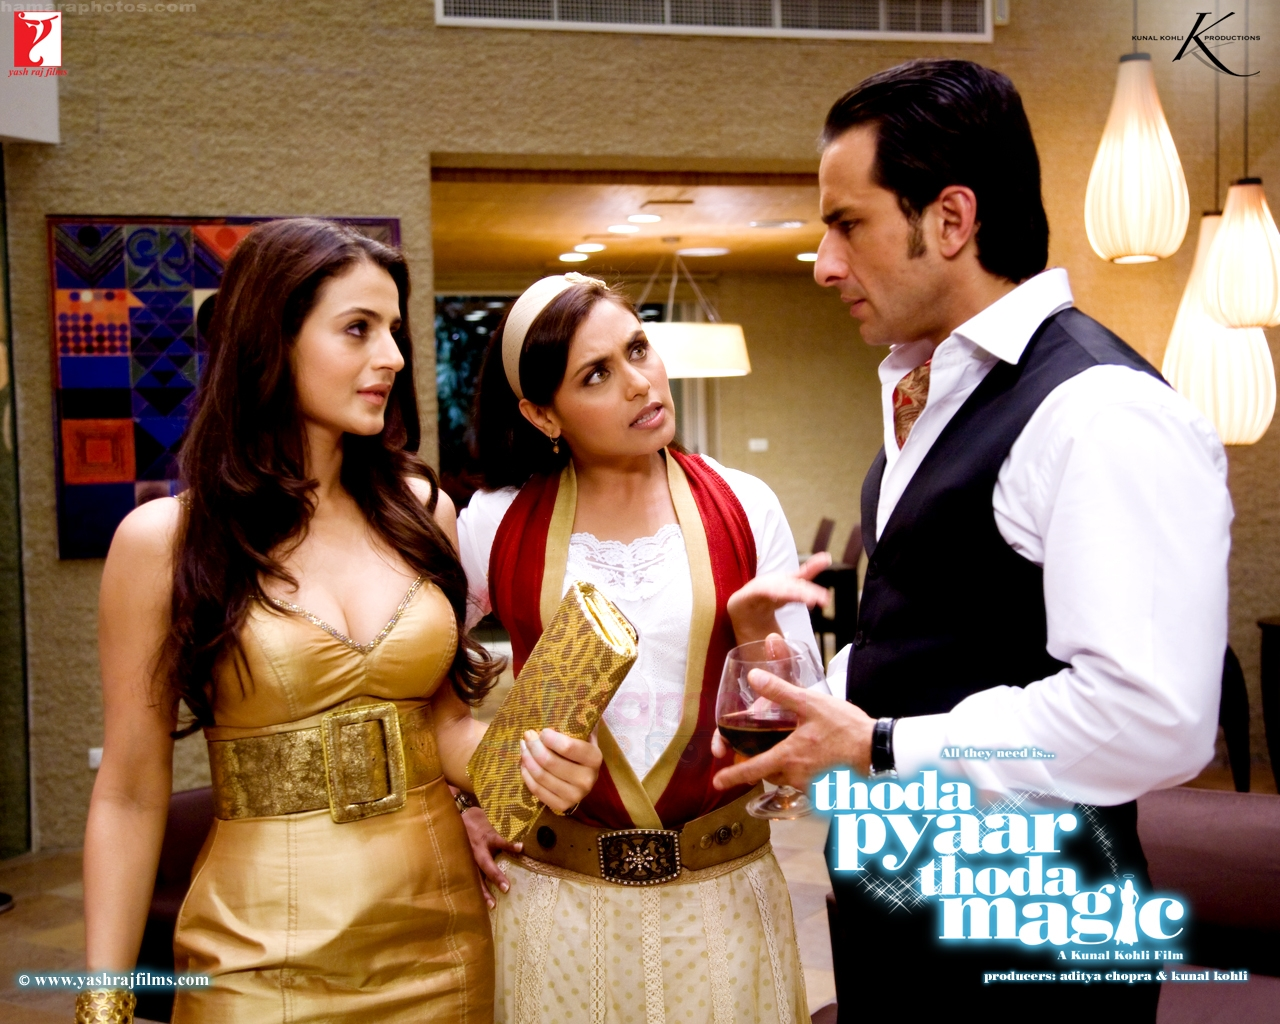 Ameesha Patel, Rani Mukherjee, Saif Ali Khan in Thoda Pyaar Thoda Magic Wallpaper